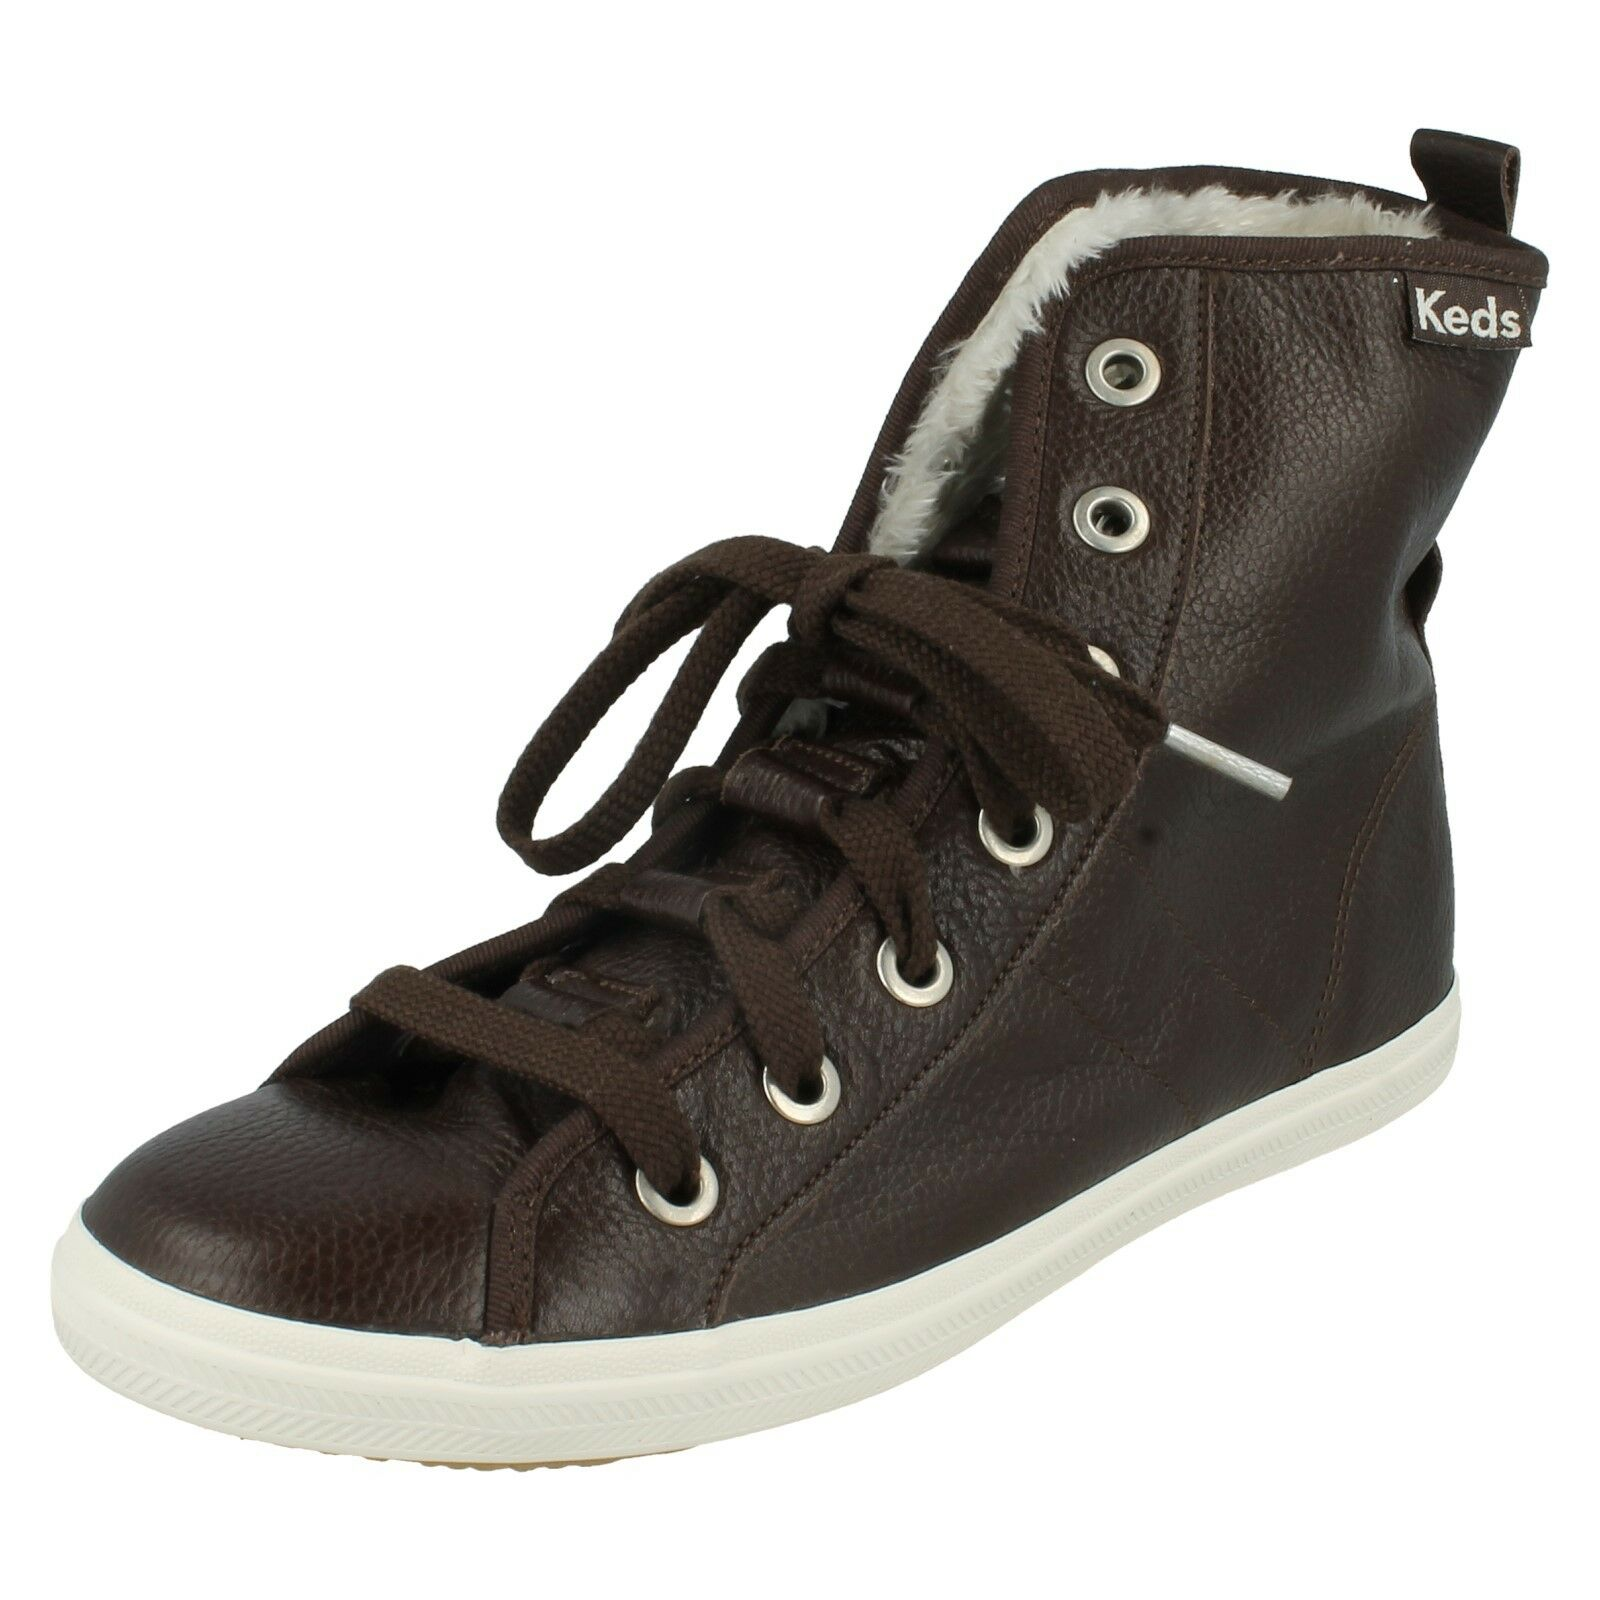 LADIES KEDS LEATHER FUR LINED LACE UP ANKLE BOOTS SHOES LOOP DE LOOP WH52030